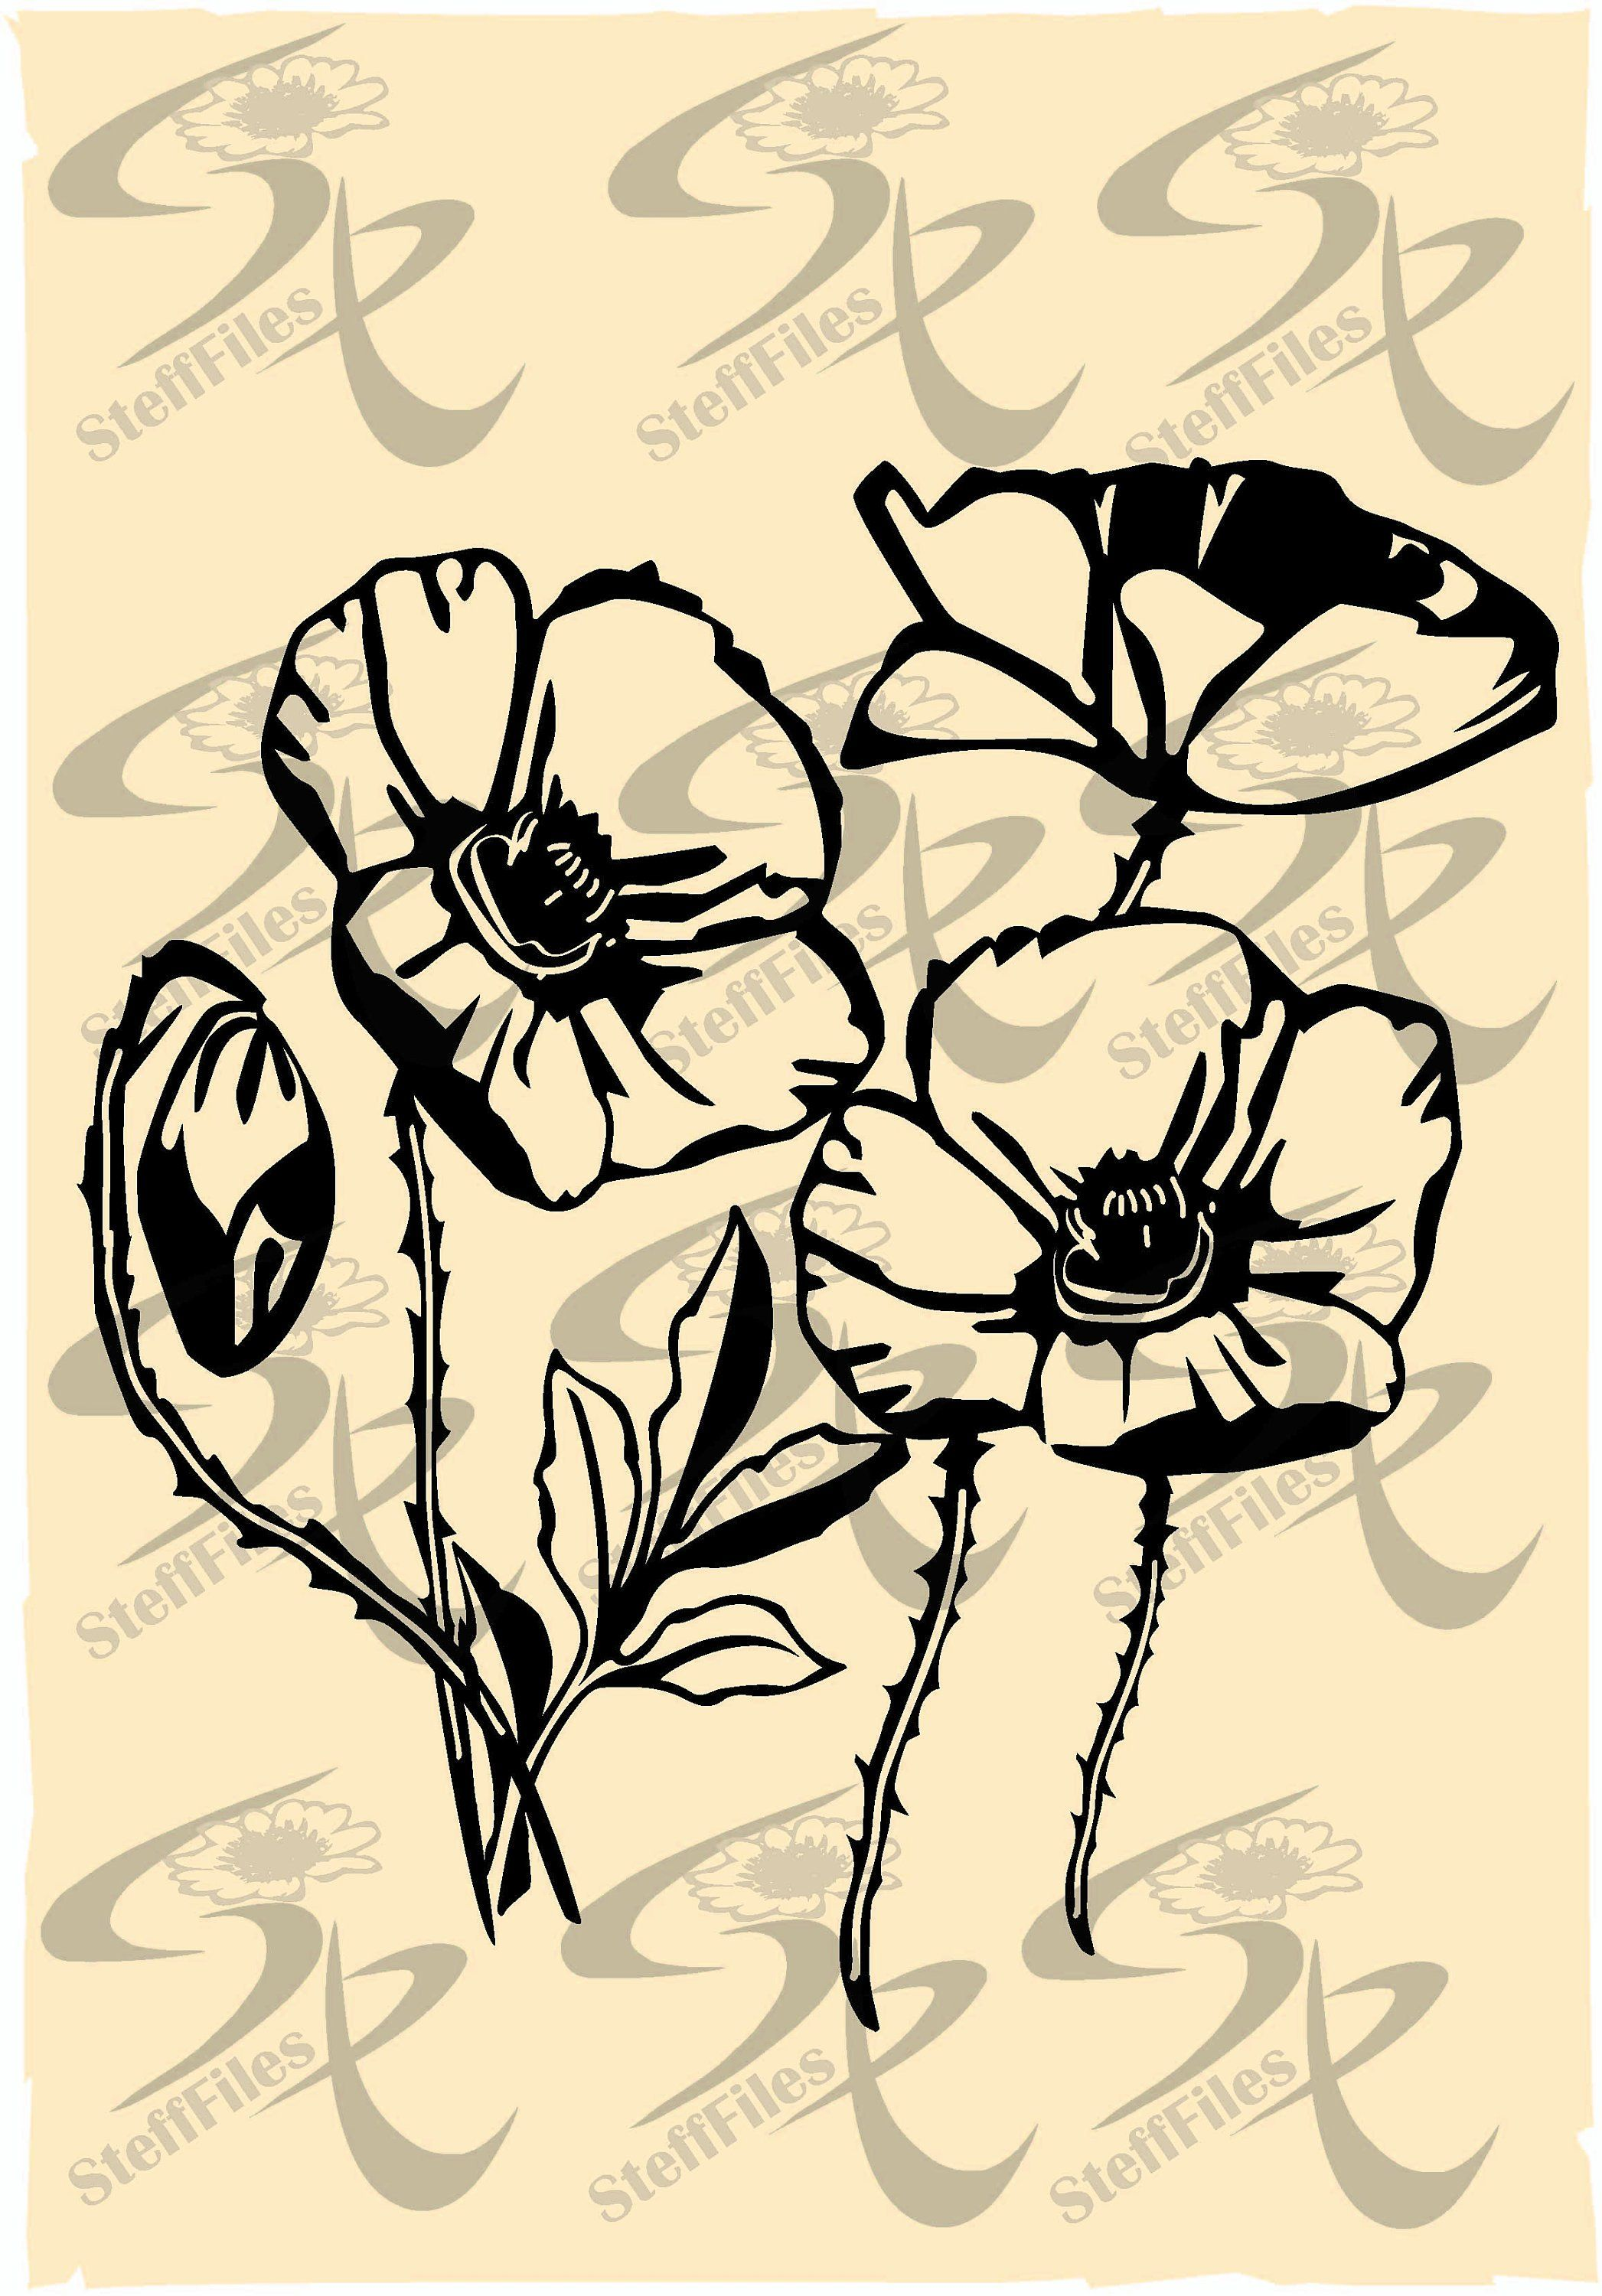 Vector POPPY FLOWERS clipart,SVG,dxf,ai, png, eps, jpg